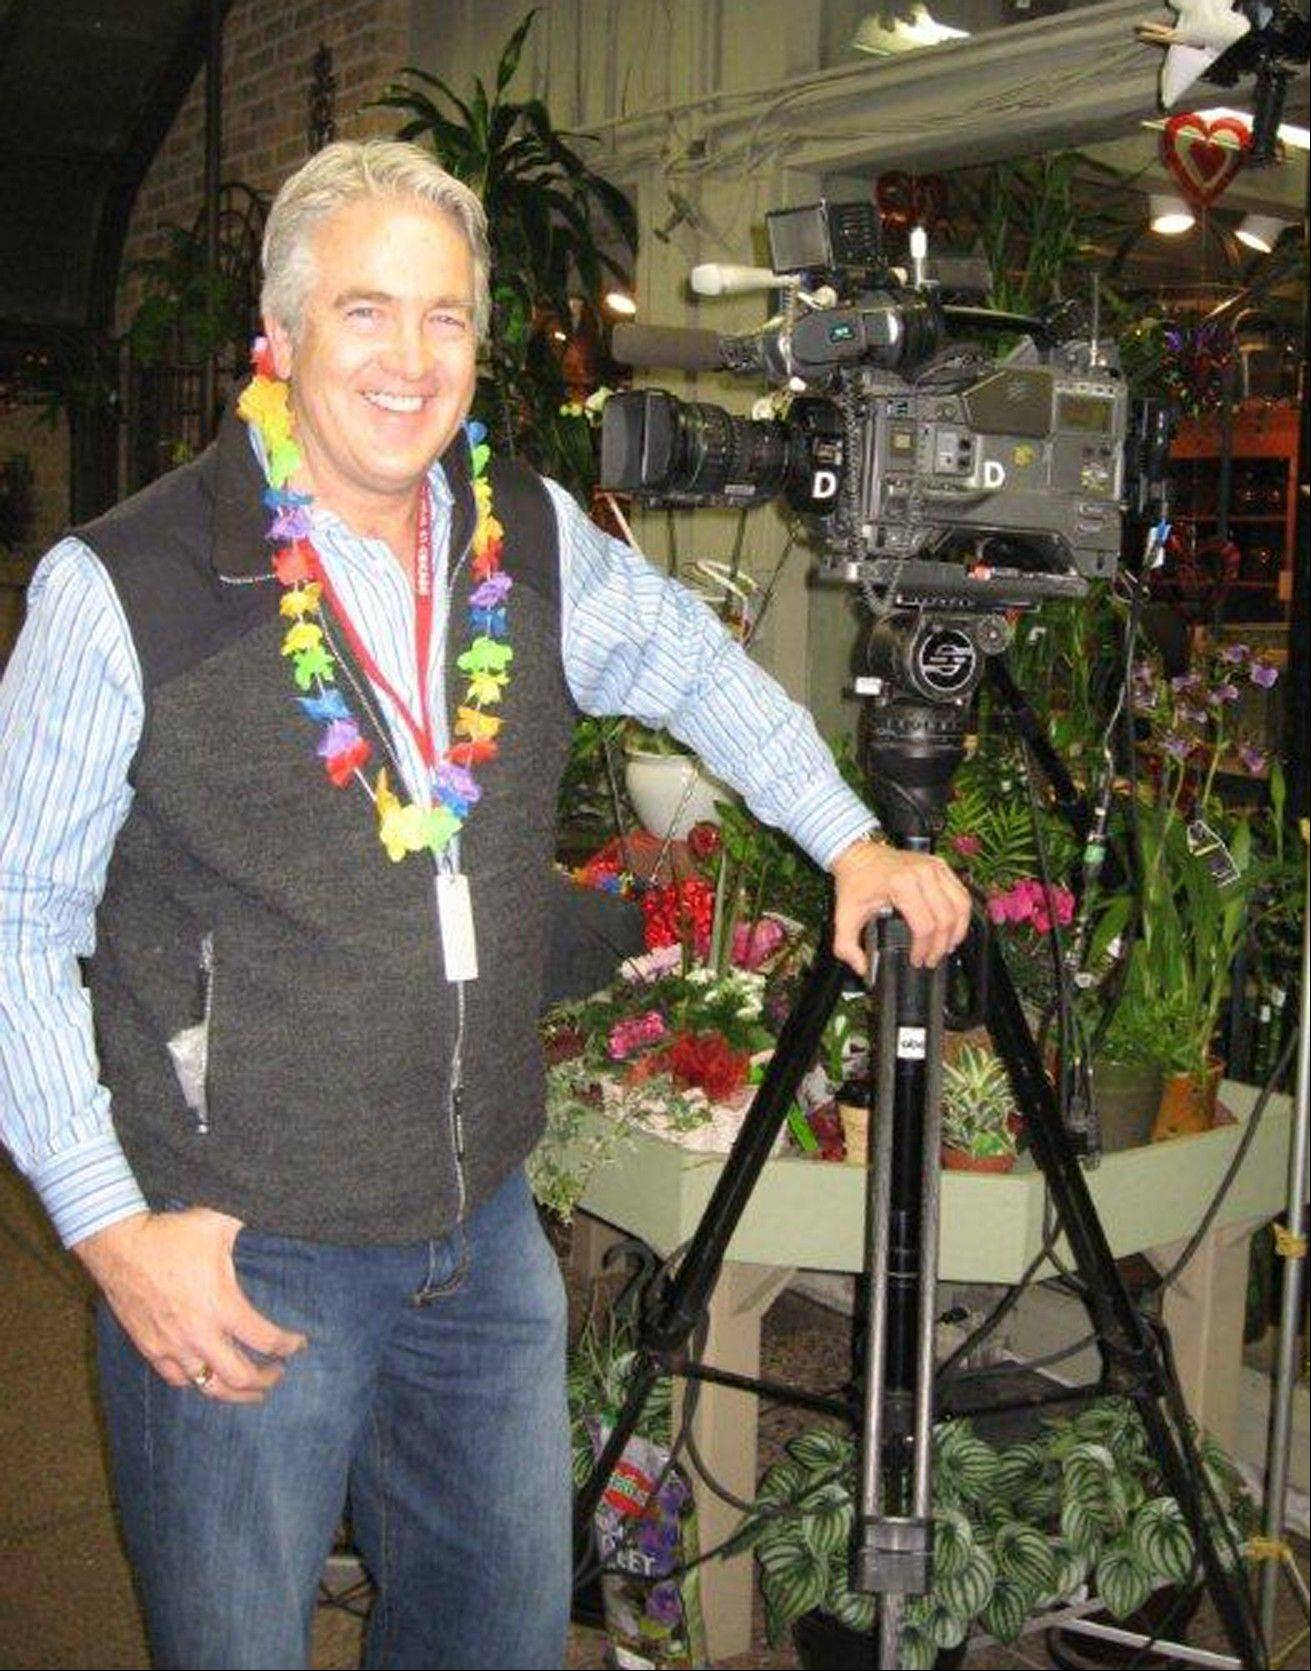 Michael Dukewich of Rolling Meadows was a longtime cameraman for ABC 7 in Chicago.